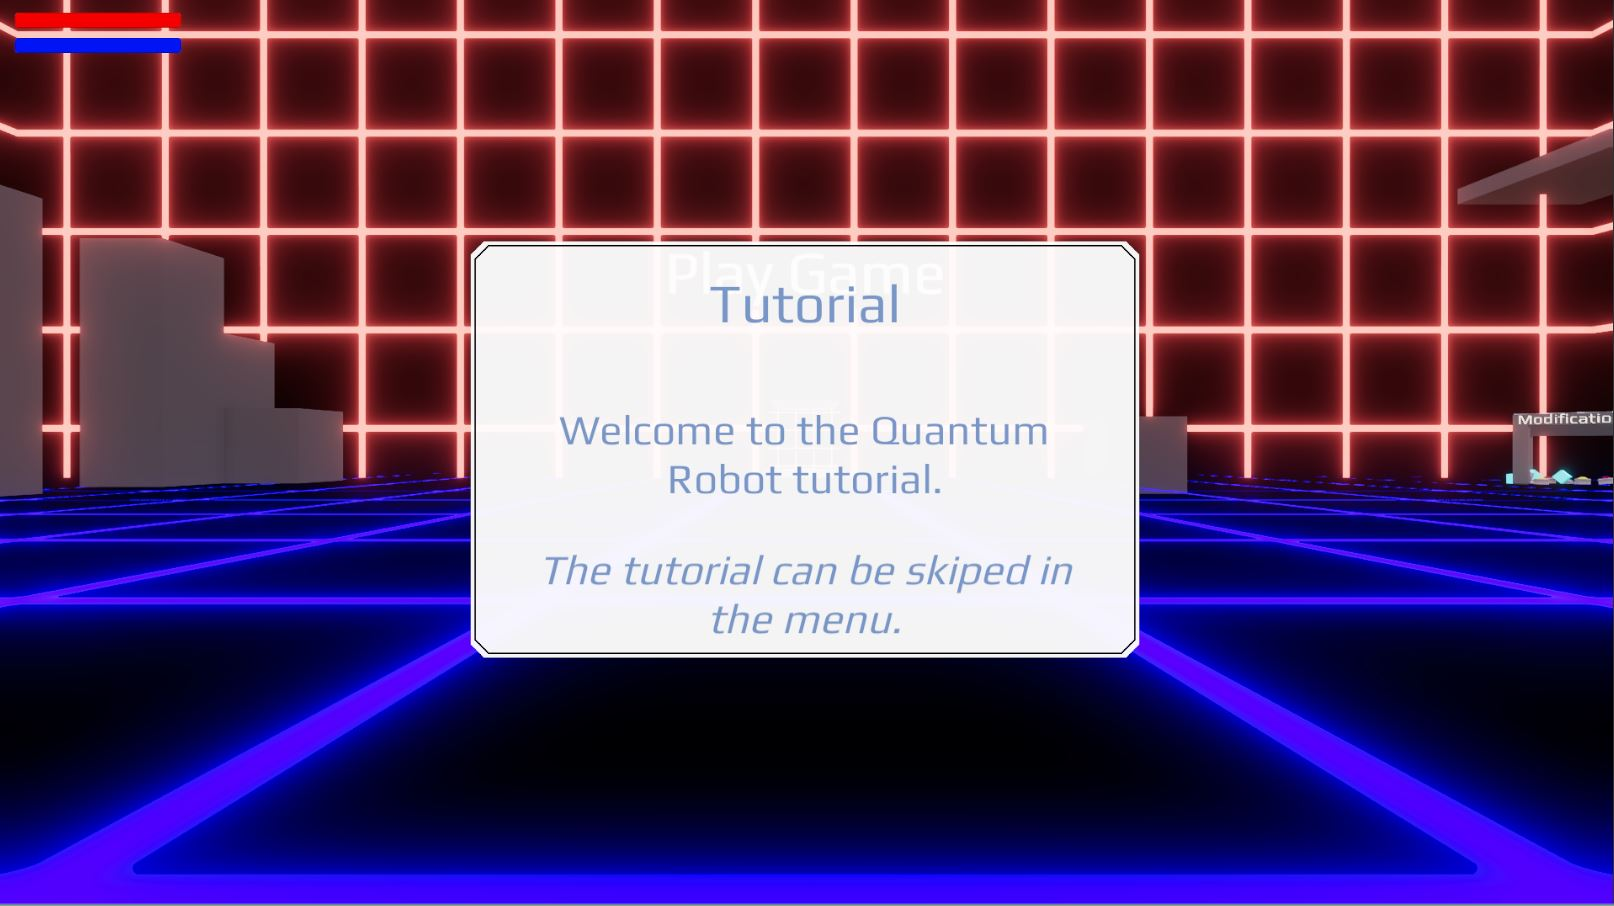 image about Adding tutorial